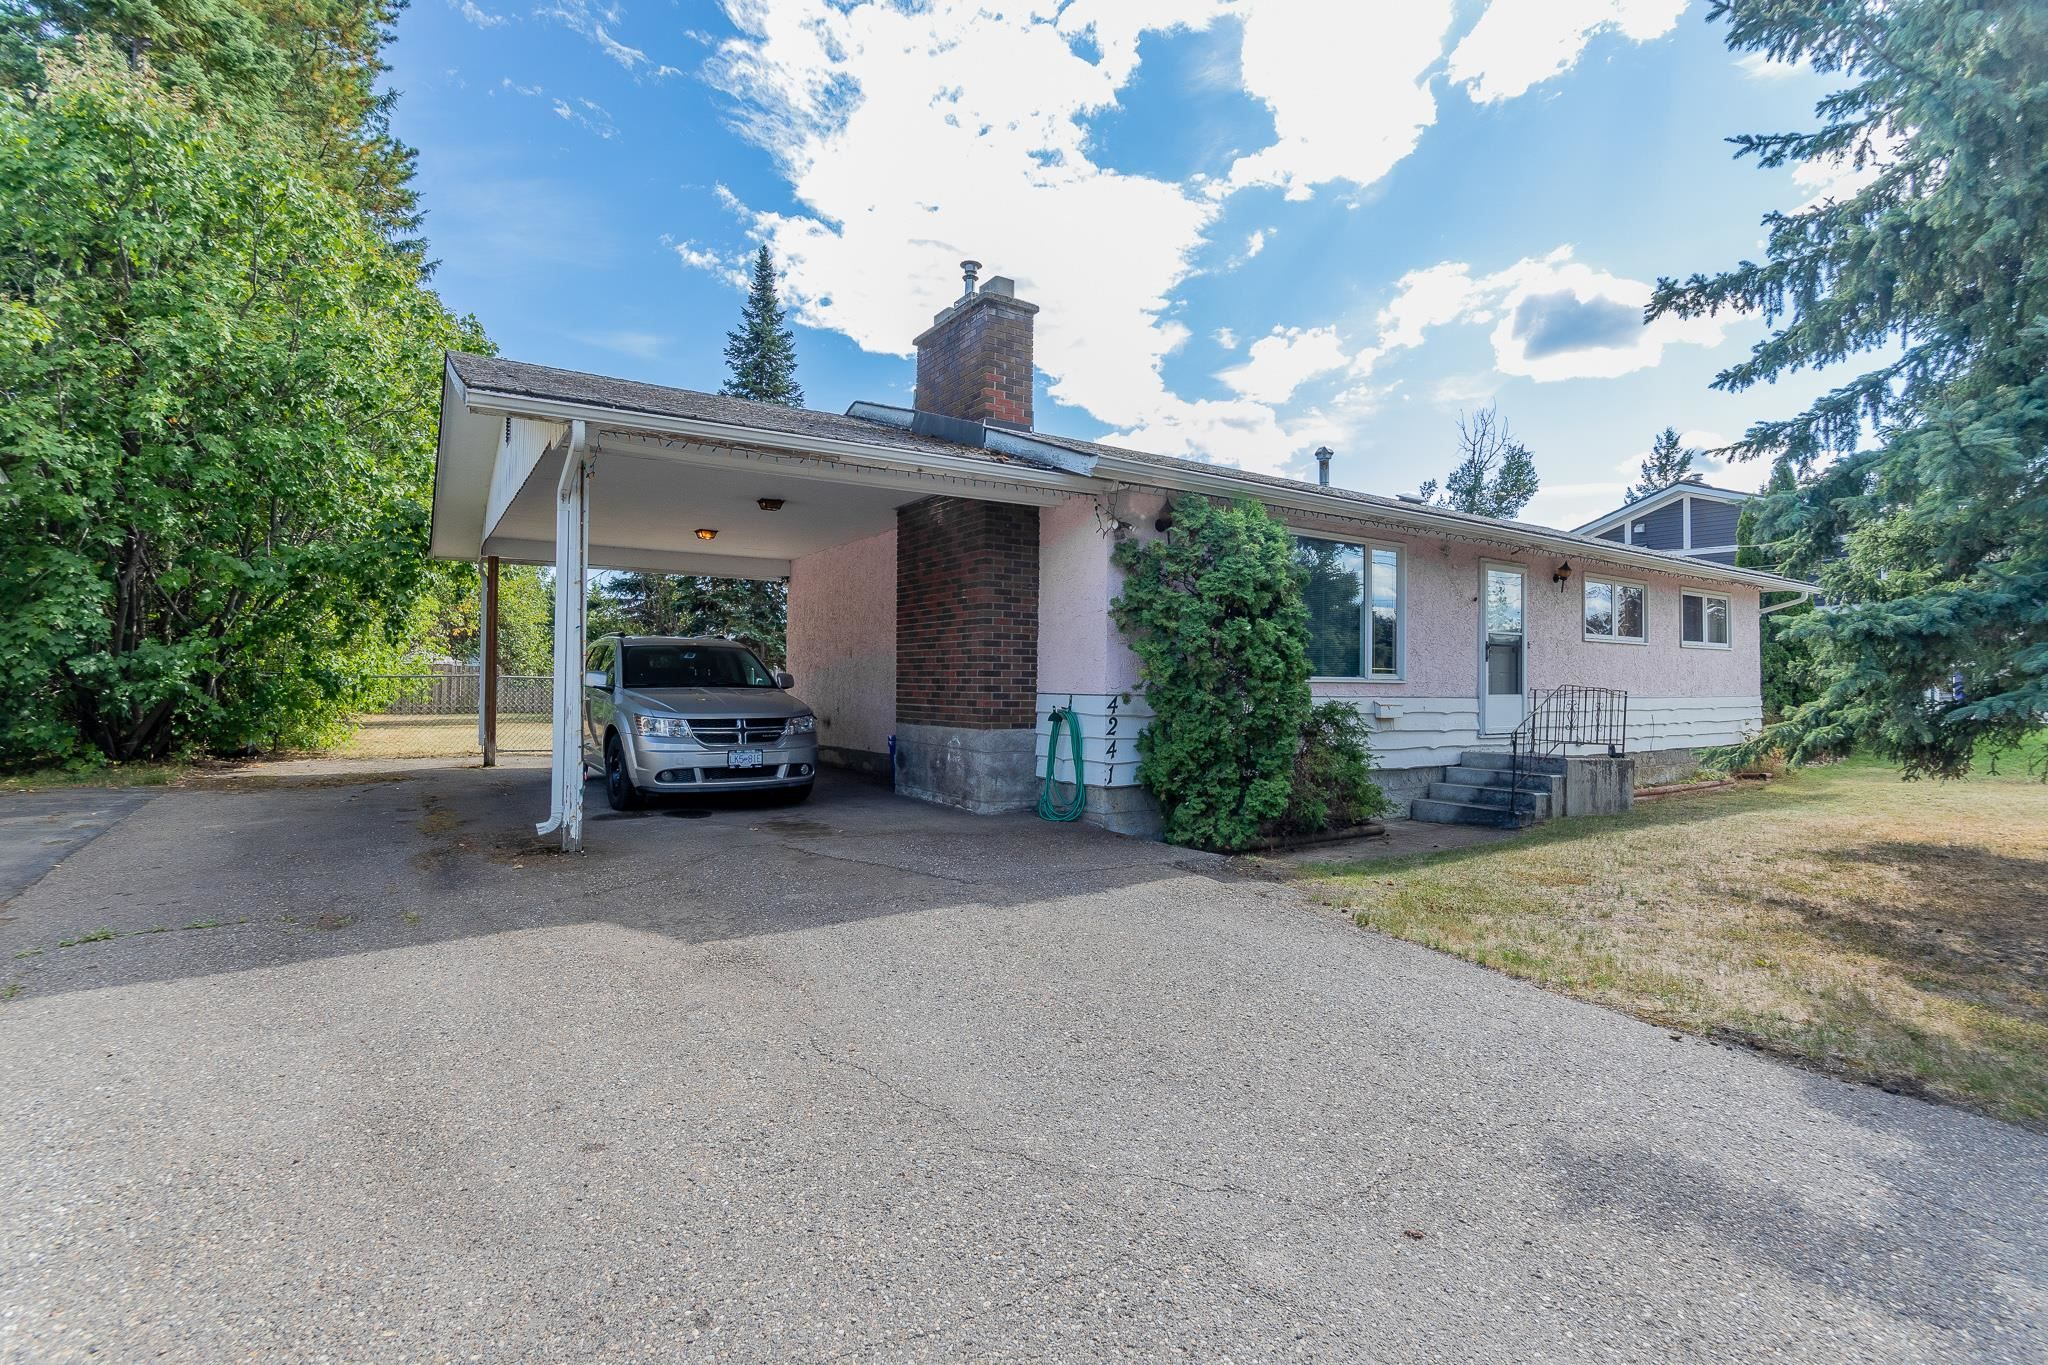 Main Photo: 4241 MICHAEL Road in Prince George: Edgewood Terrace House for sale (PG City North (Zone 73))  : MLS®# R2612716